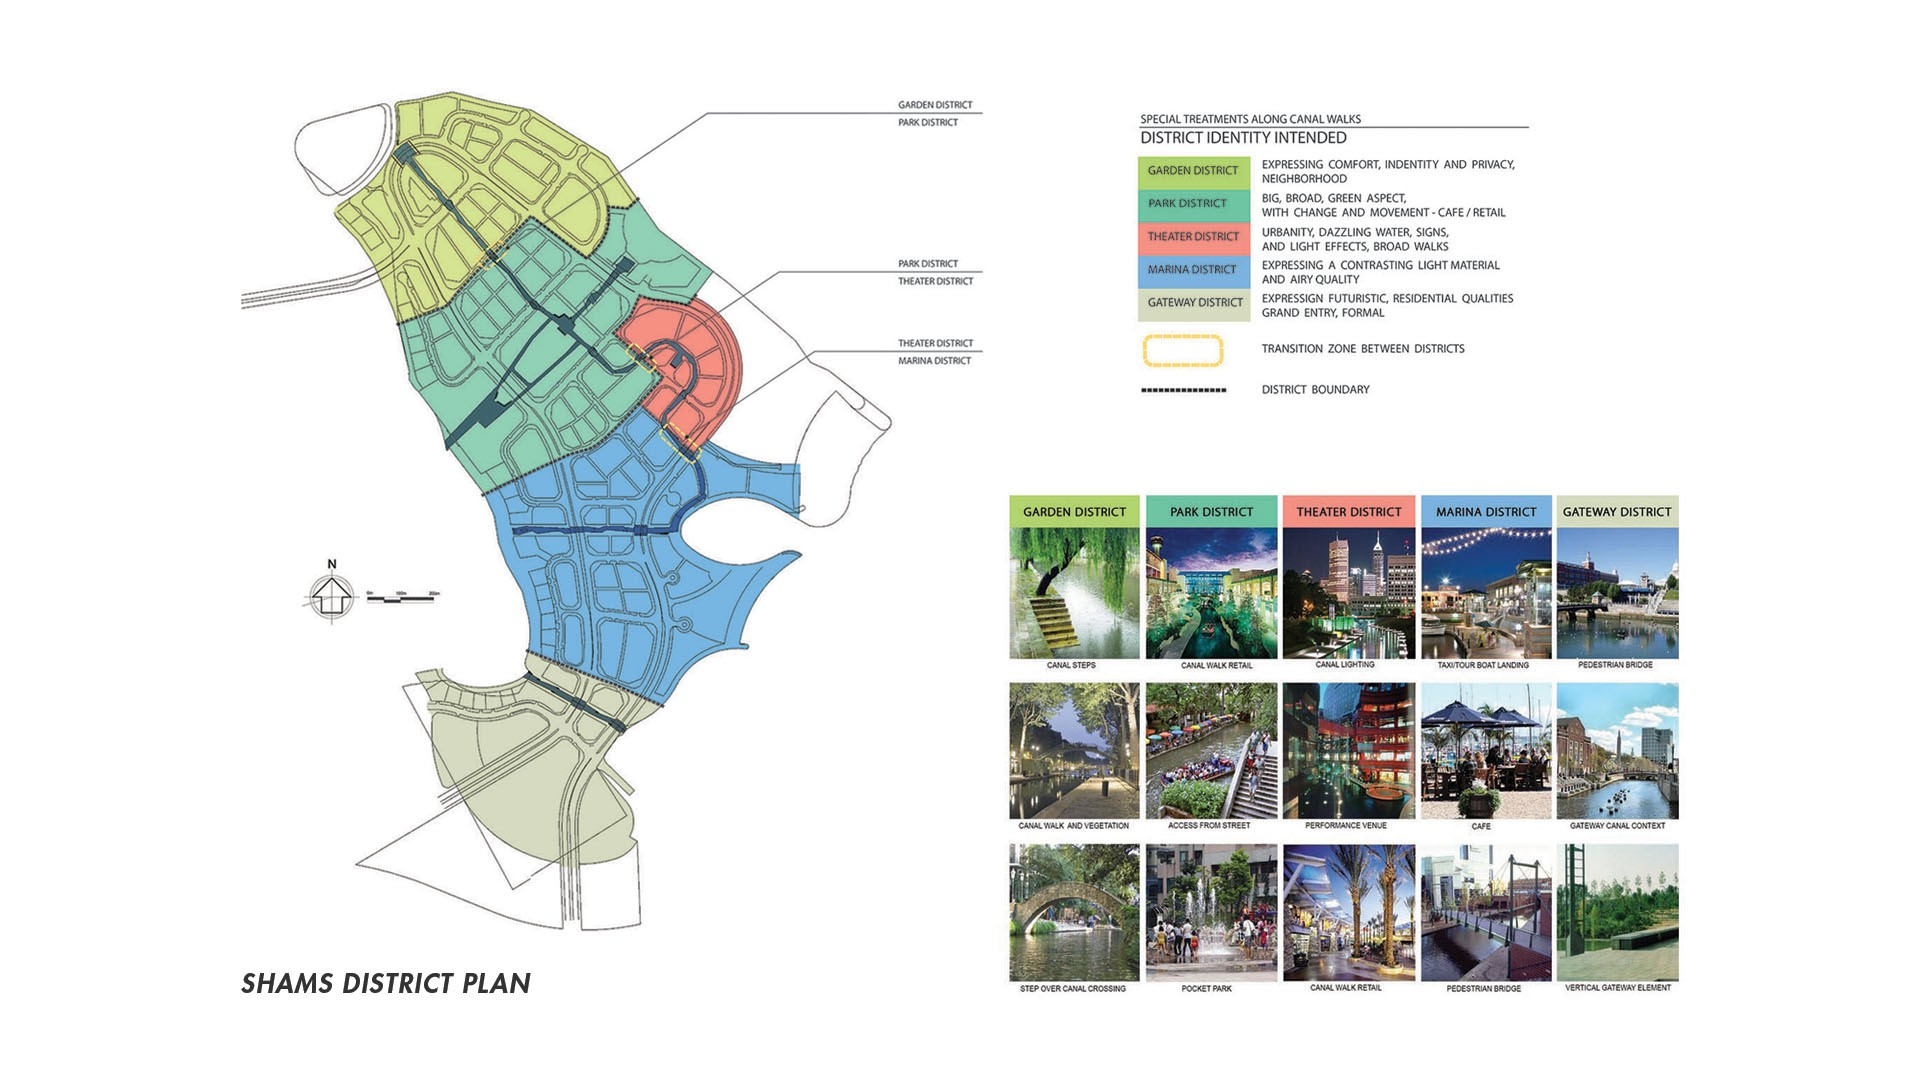 Shams_district site plan